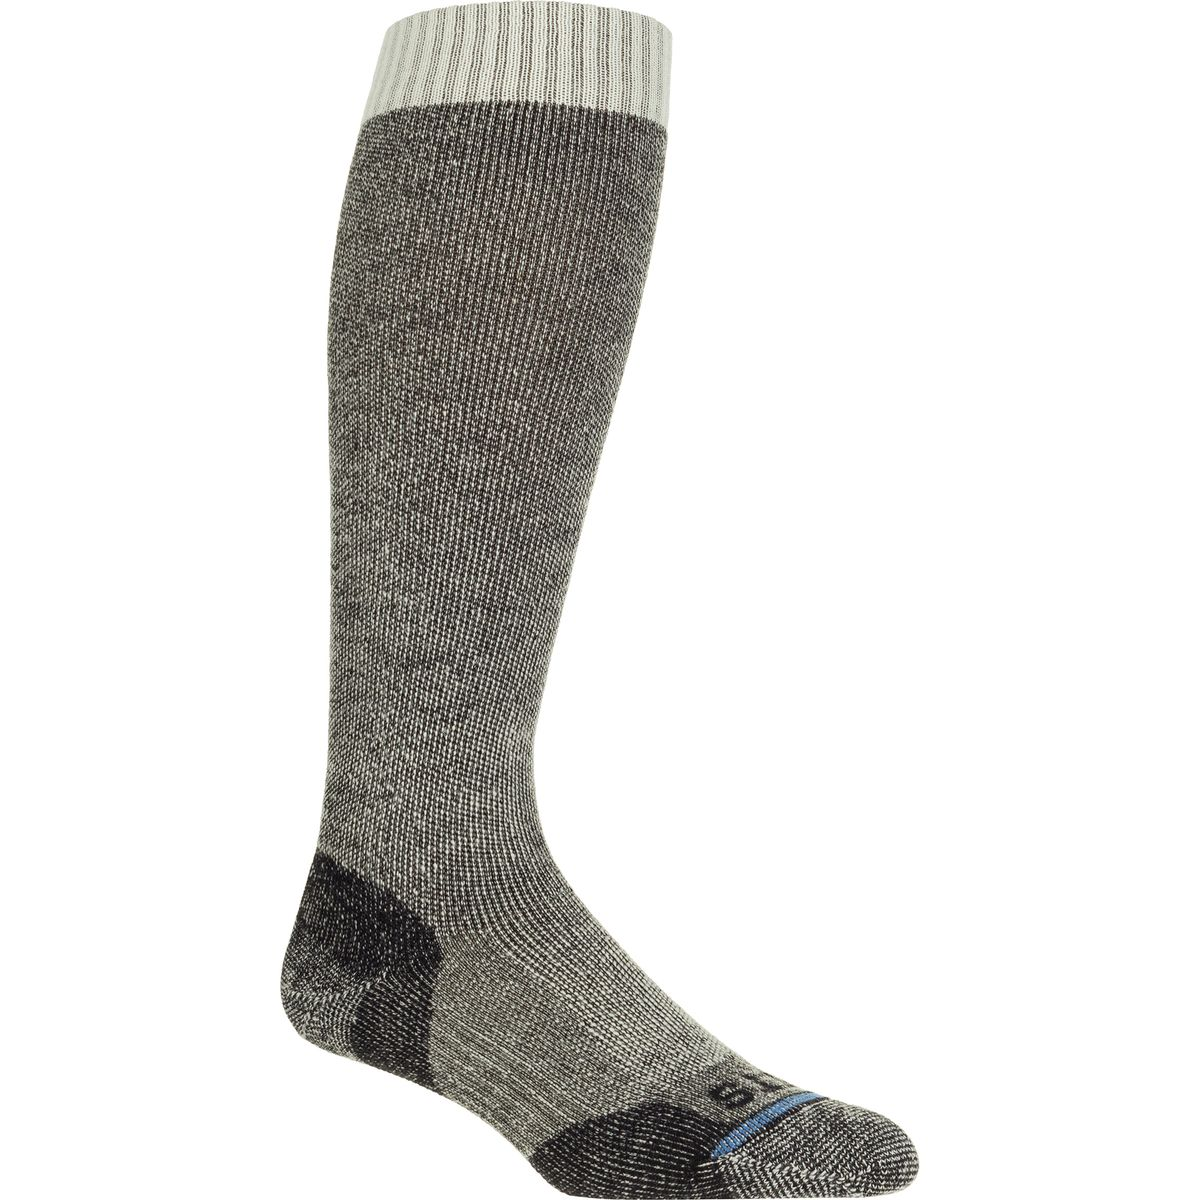 FITS Sock Medium Rugged OTC